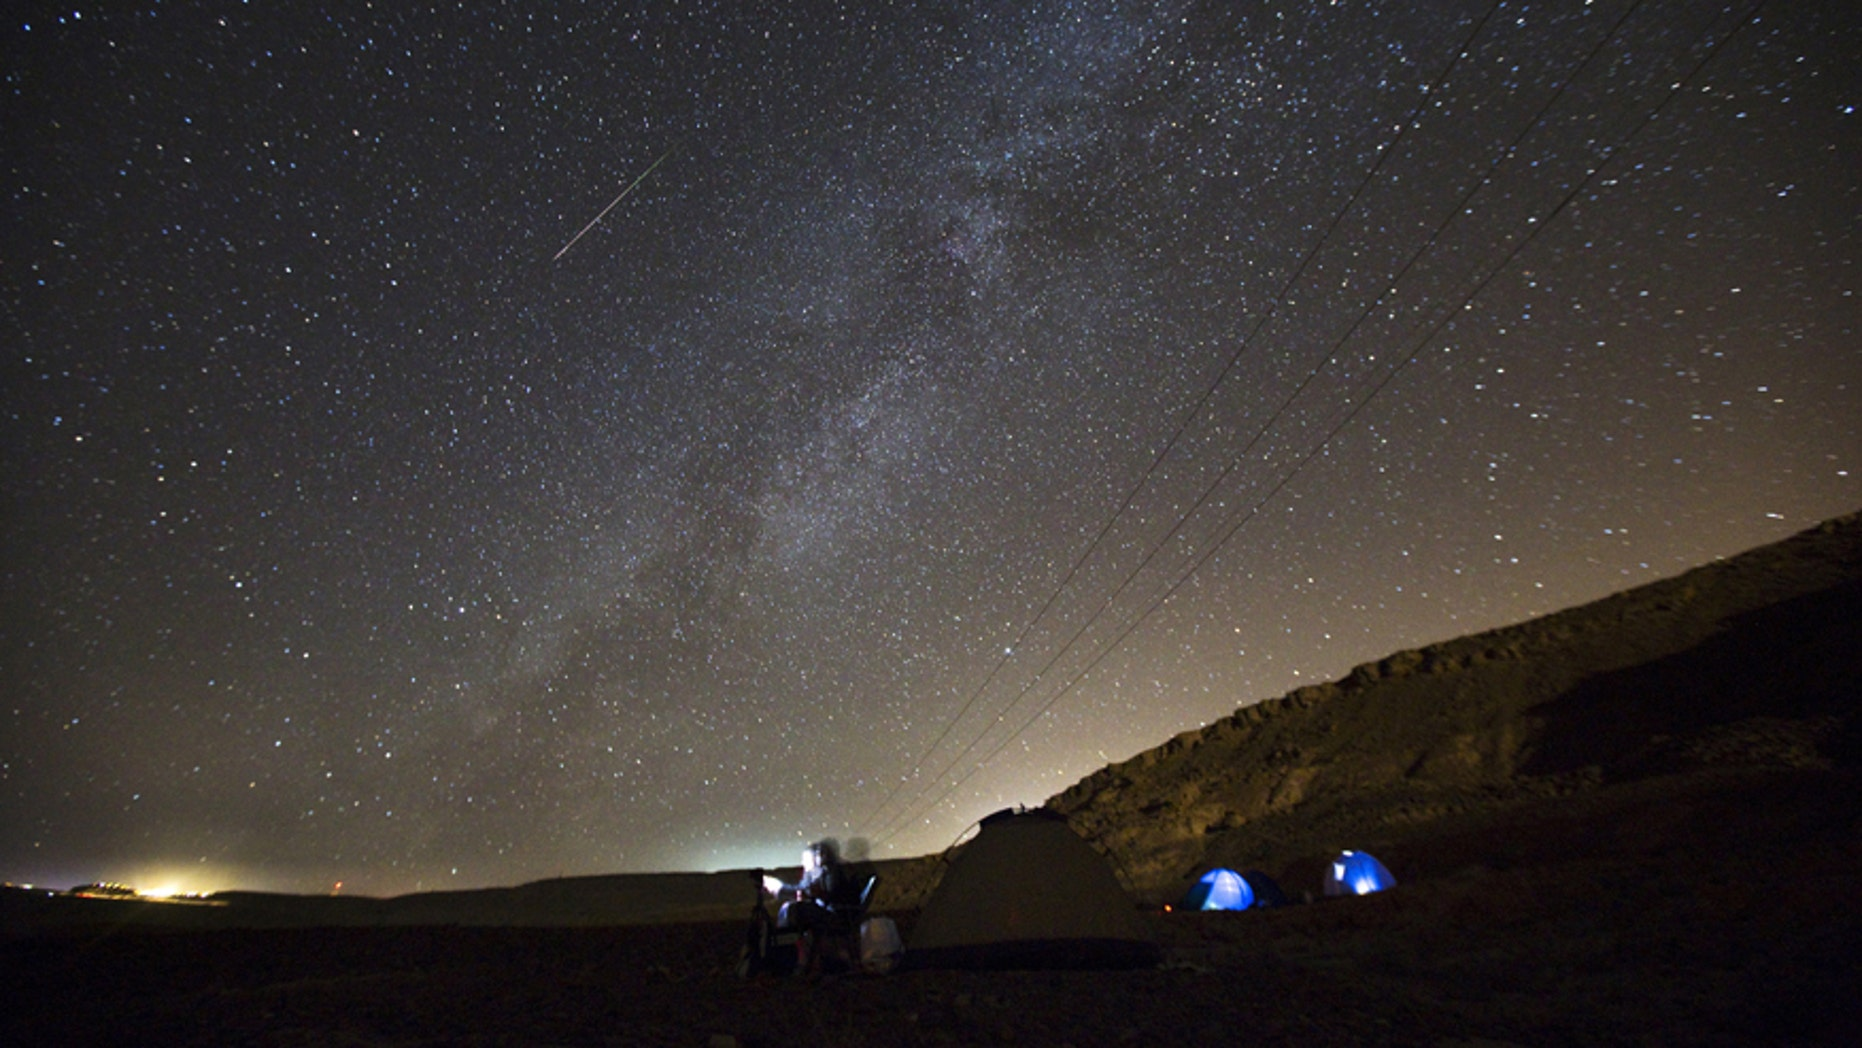 File photo - a meteor streaks across the sky in the early morning as people watching during the Perseid meteor shower in Ramon Carter near the town of Mitzpe Ramon, southern Israel, Aug.13, 2015.